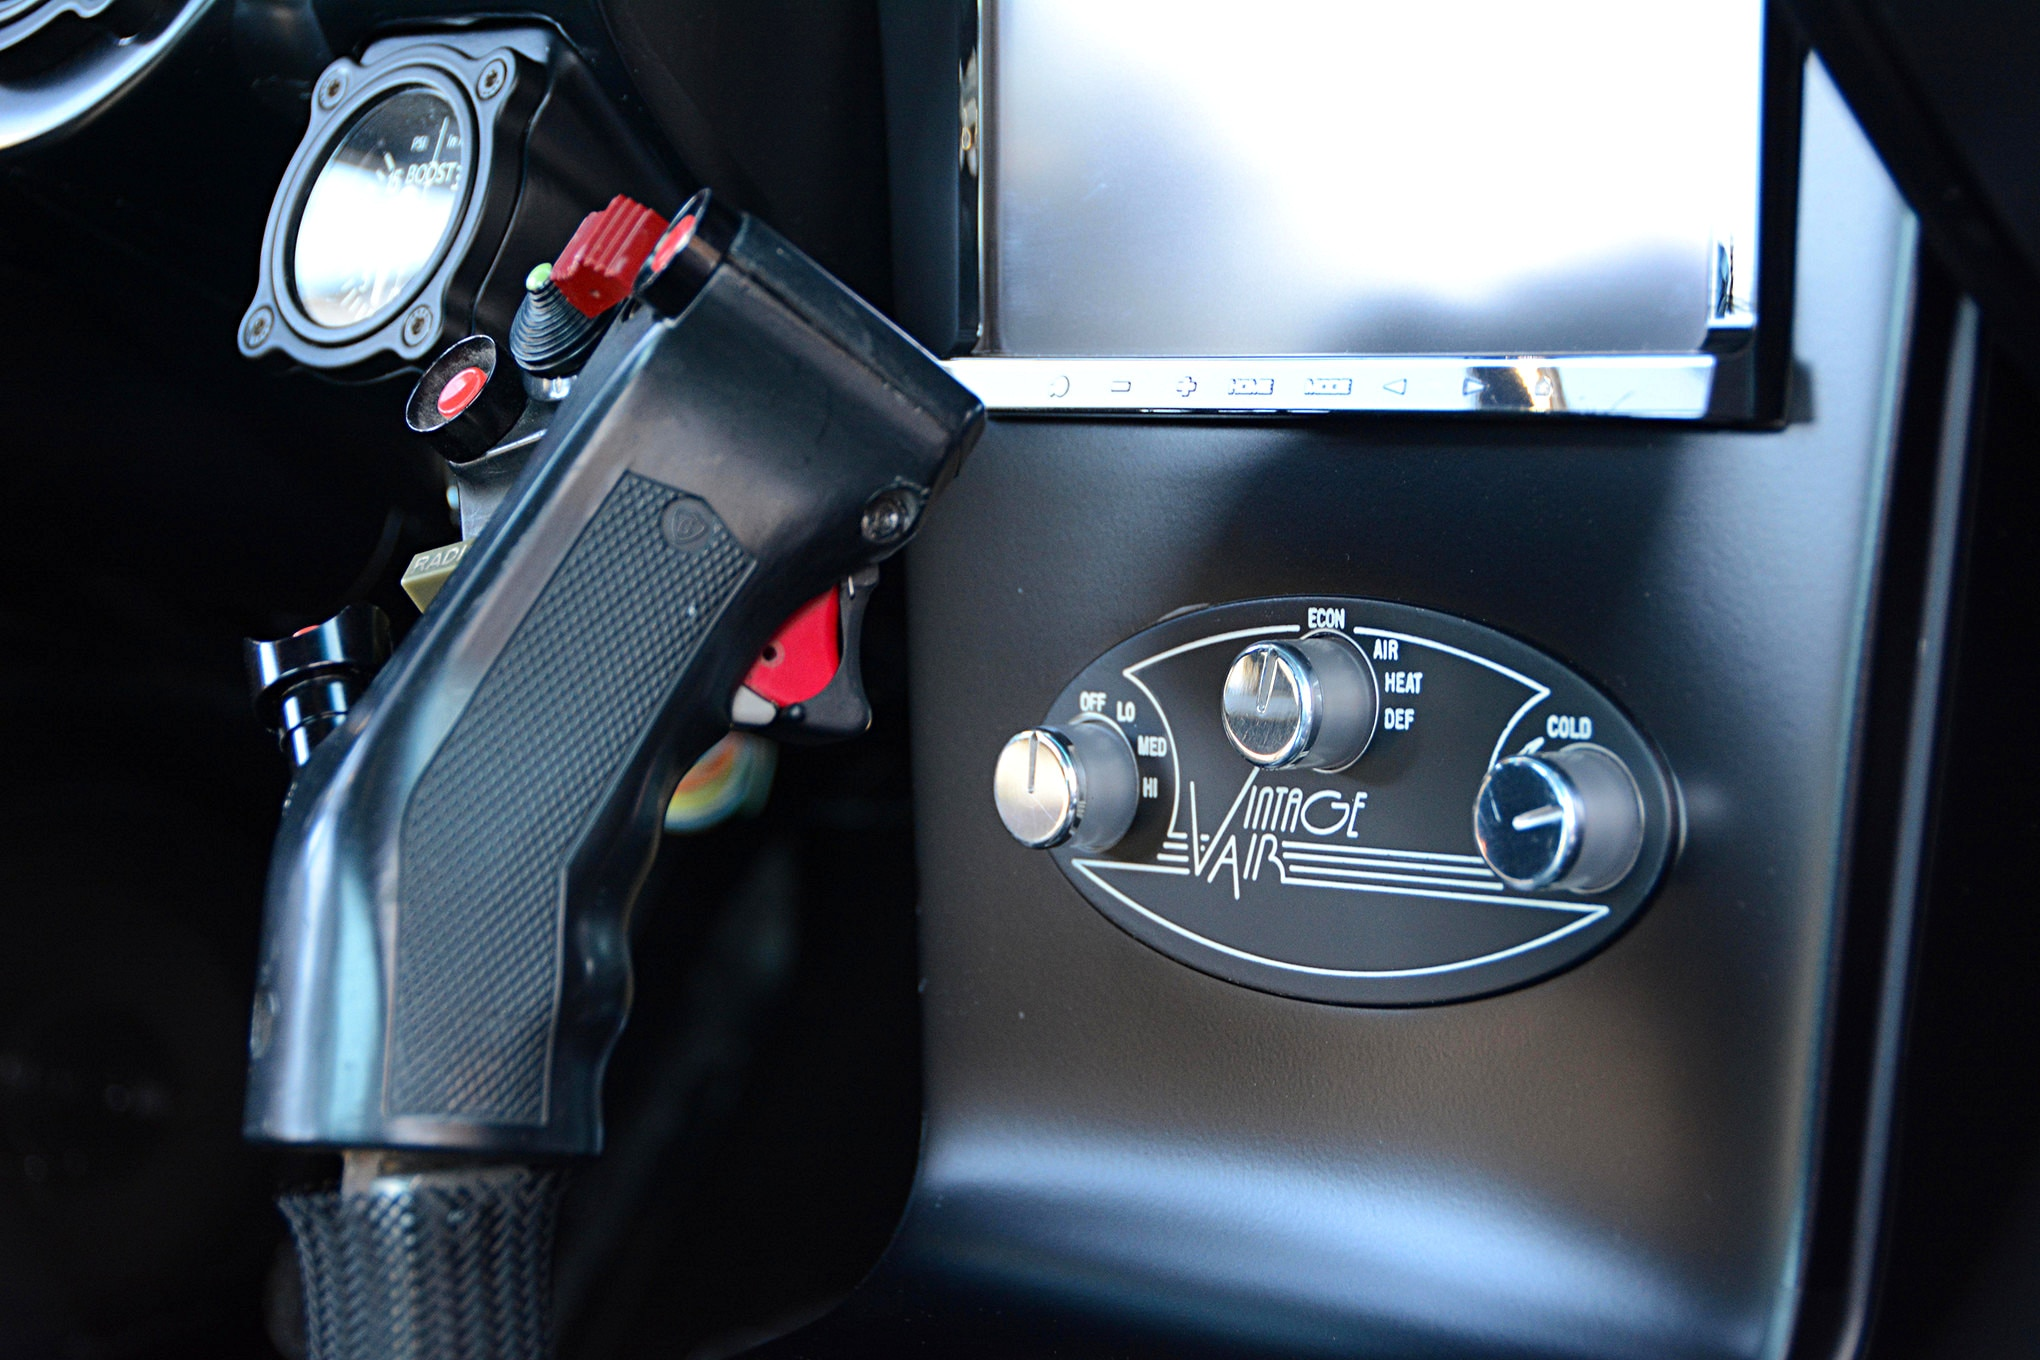 While the shifter handle gets a lot of attention, it's important to note that it operates a Tremec T56 six-speed manual transmission. American Powertrain supplied the hydraulic clutch setup, as well as the White Lightning shifter mechanism.